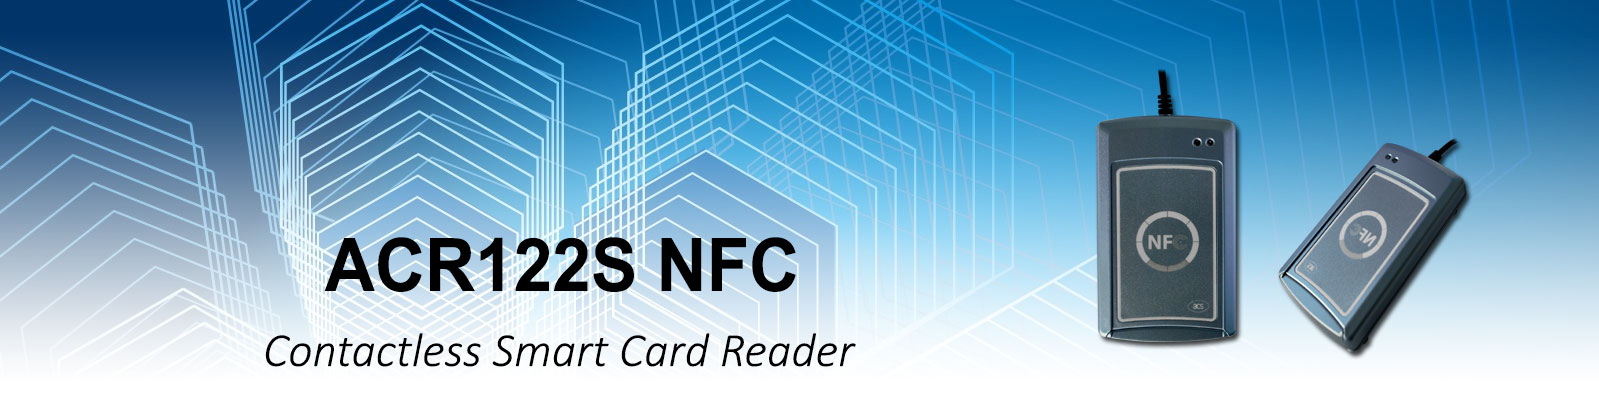 ACR122S NFC Contactless Smart Card Reader